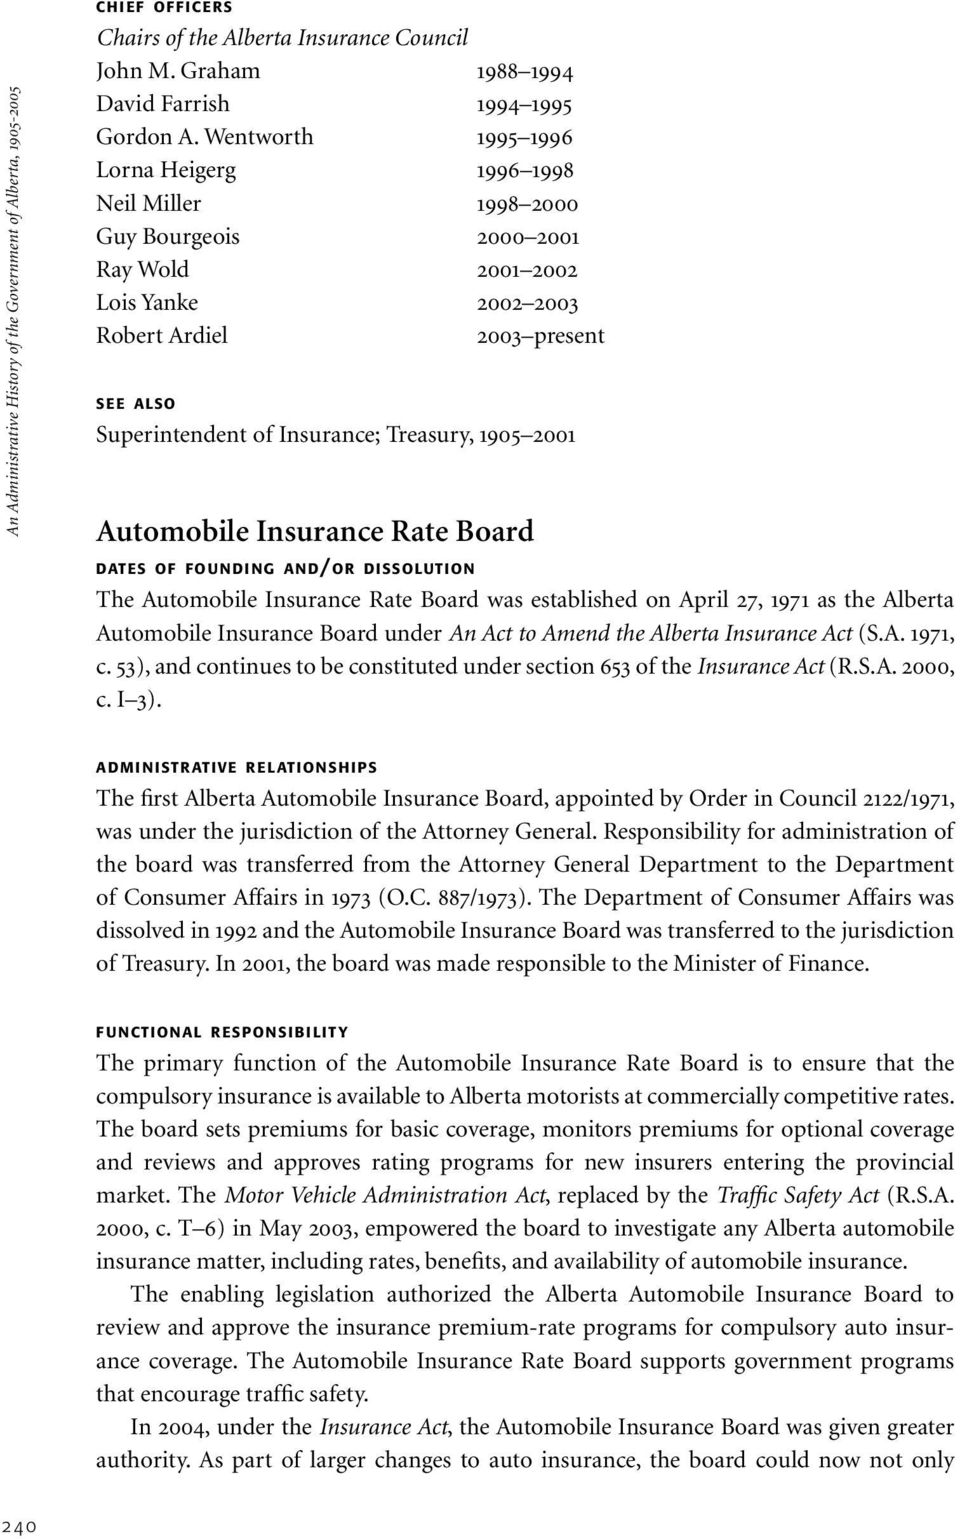 Treasury, 1905 2001 Automobile Insurance Rate Board dates of fou n di ng an d/or dissolution The Automobile Insurance Rate Board was established on April 27, 1971 as the Alberta Automobile Insurance